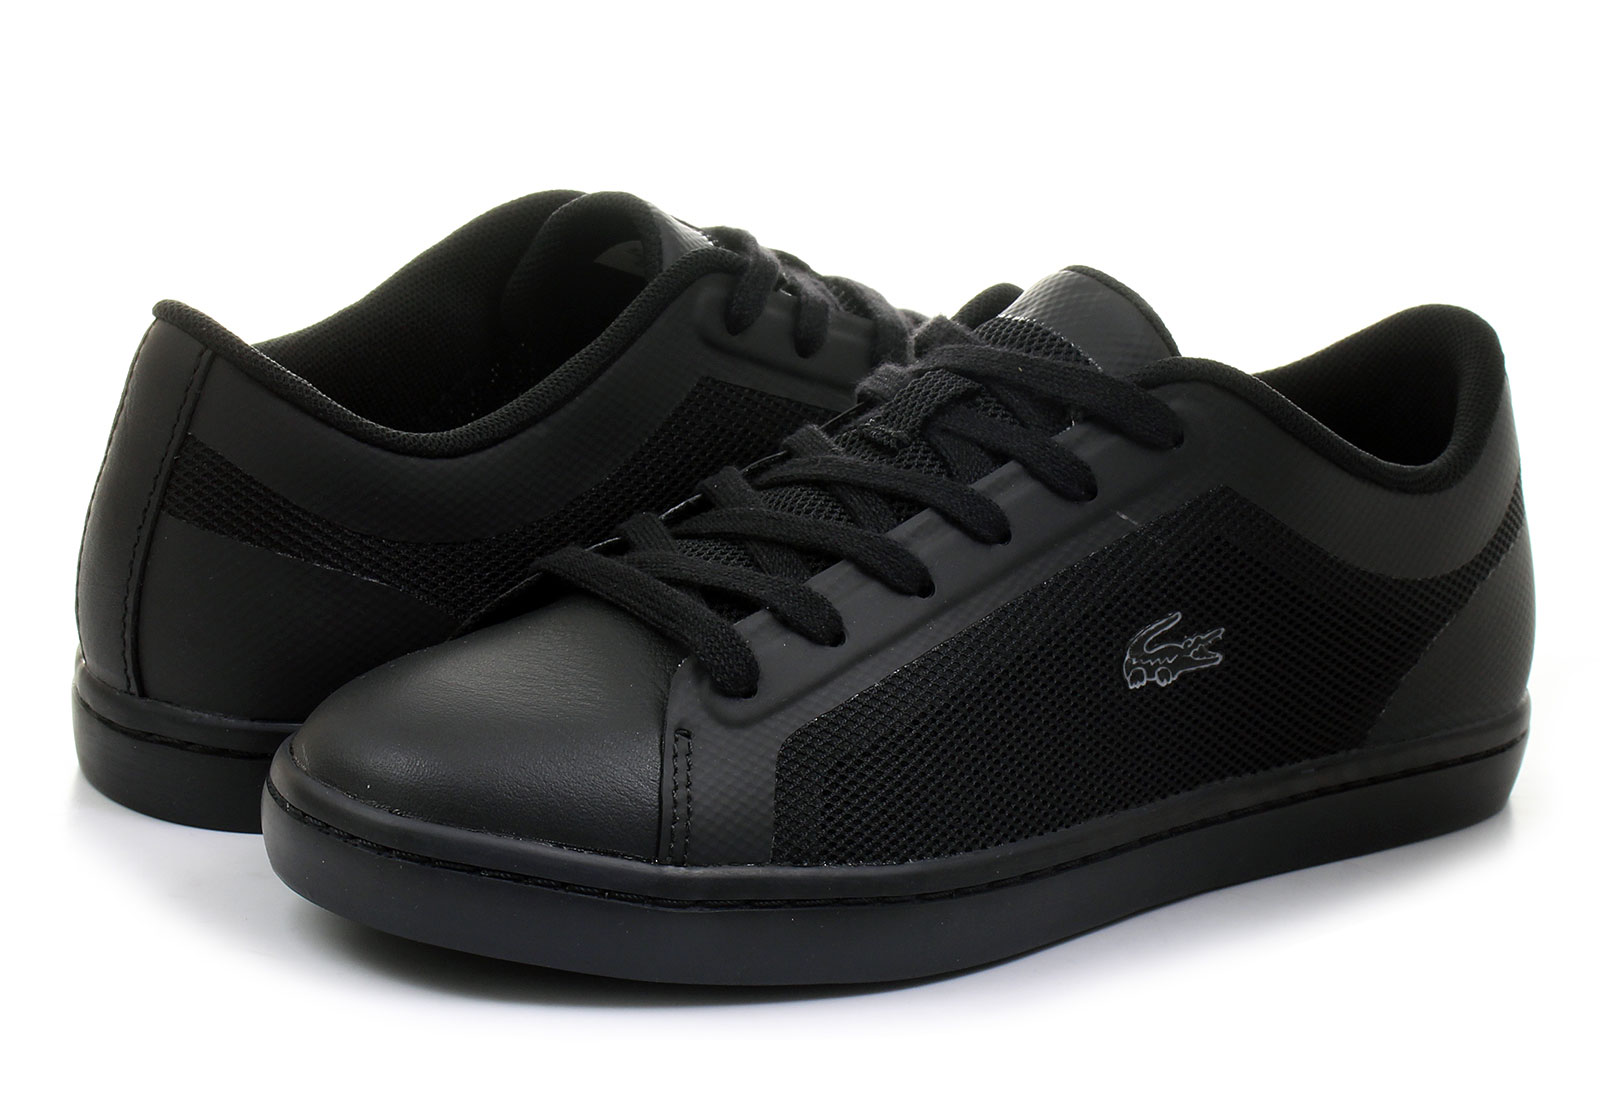 Lacoste Shoes - Straightset - 161spw0074-024